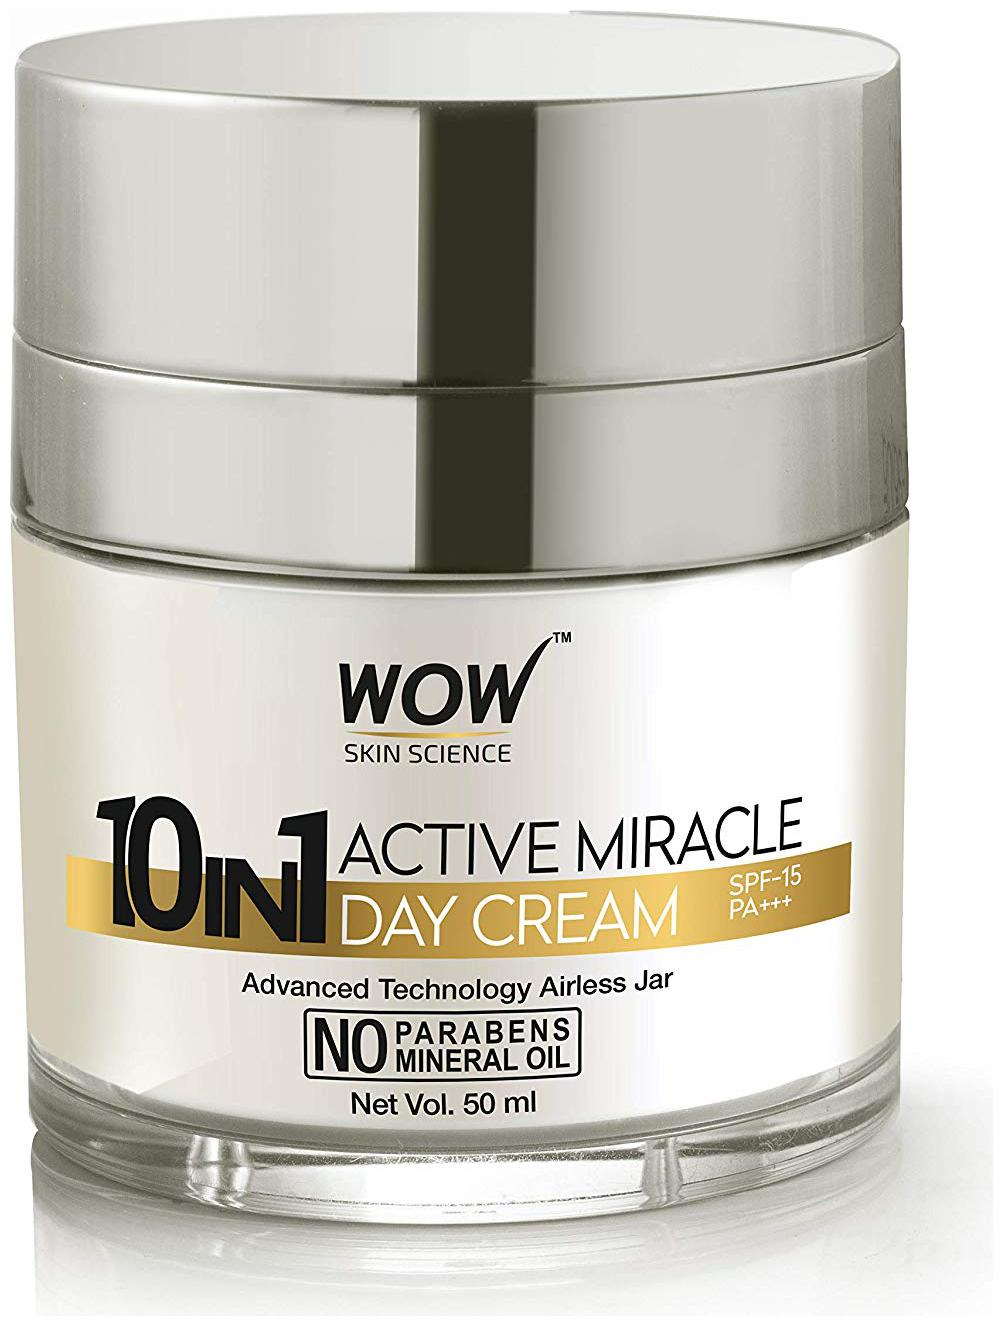 WOW Skin Science 10 in 1 Active Miracle No Parabens & Mineral Oil Day Cream 50ml